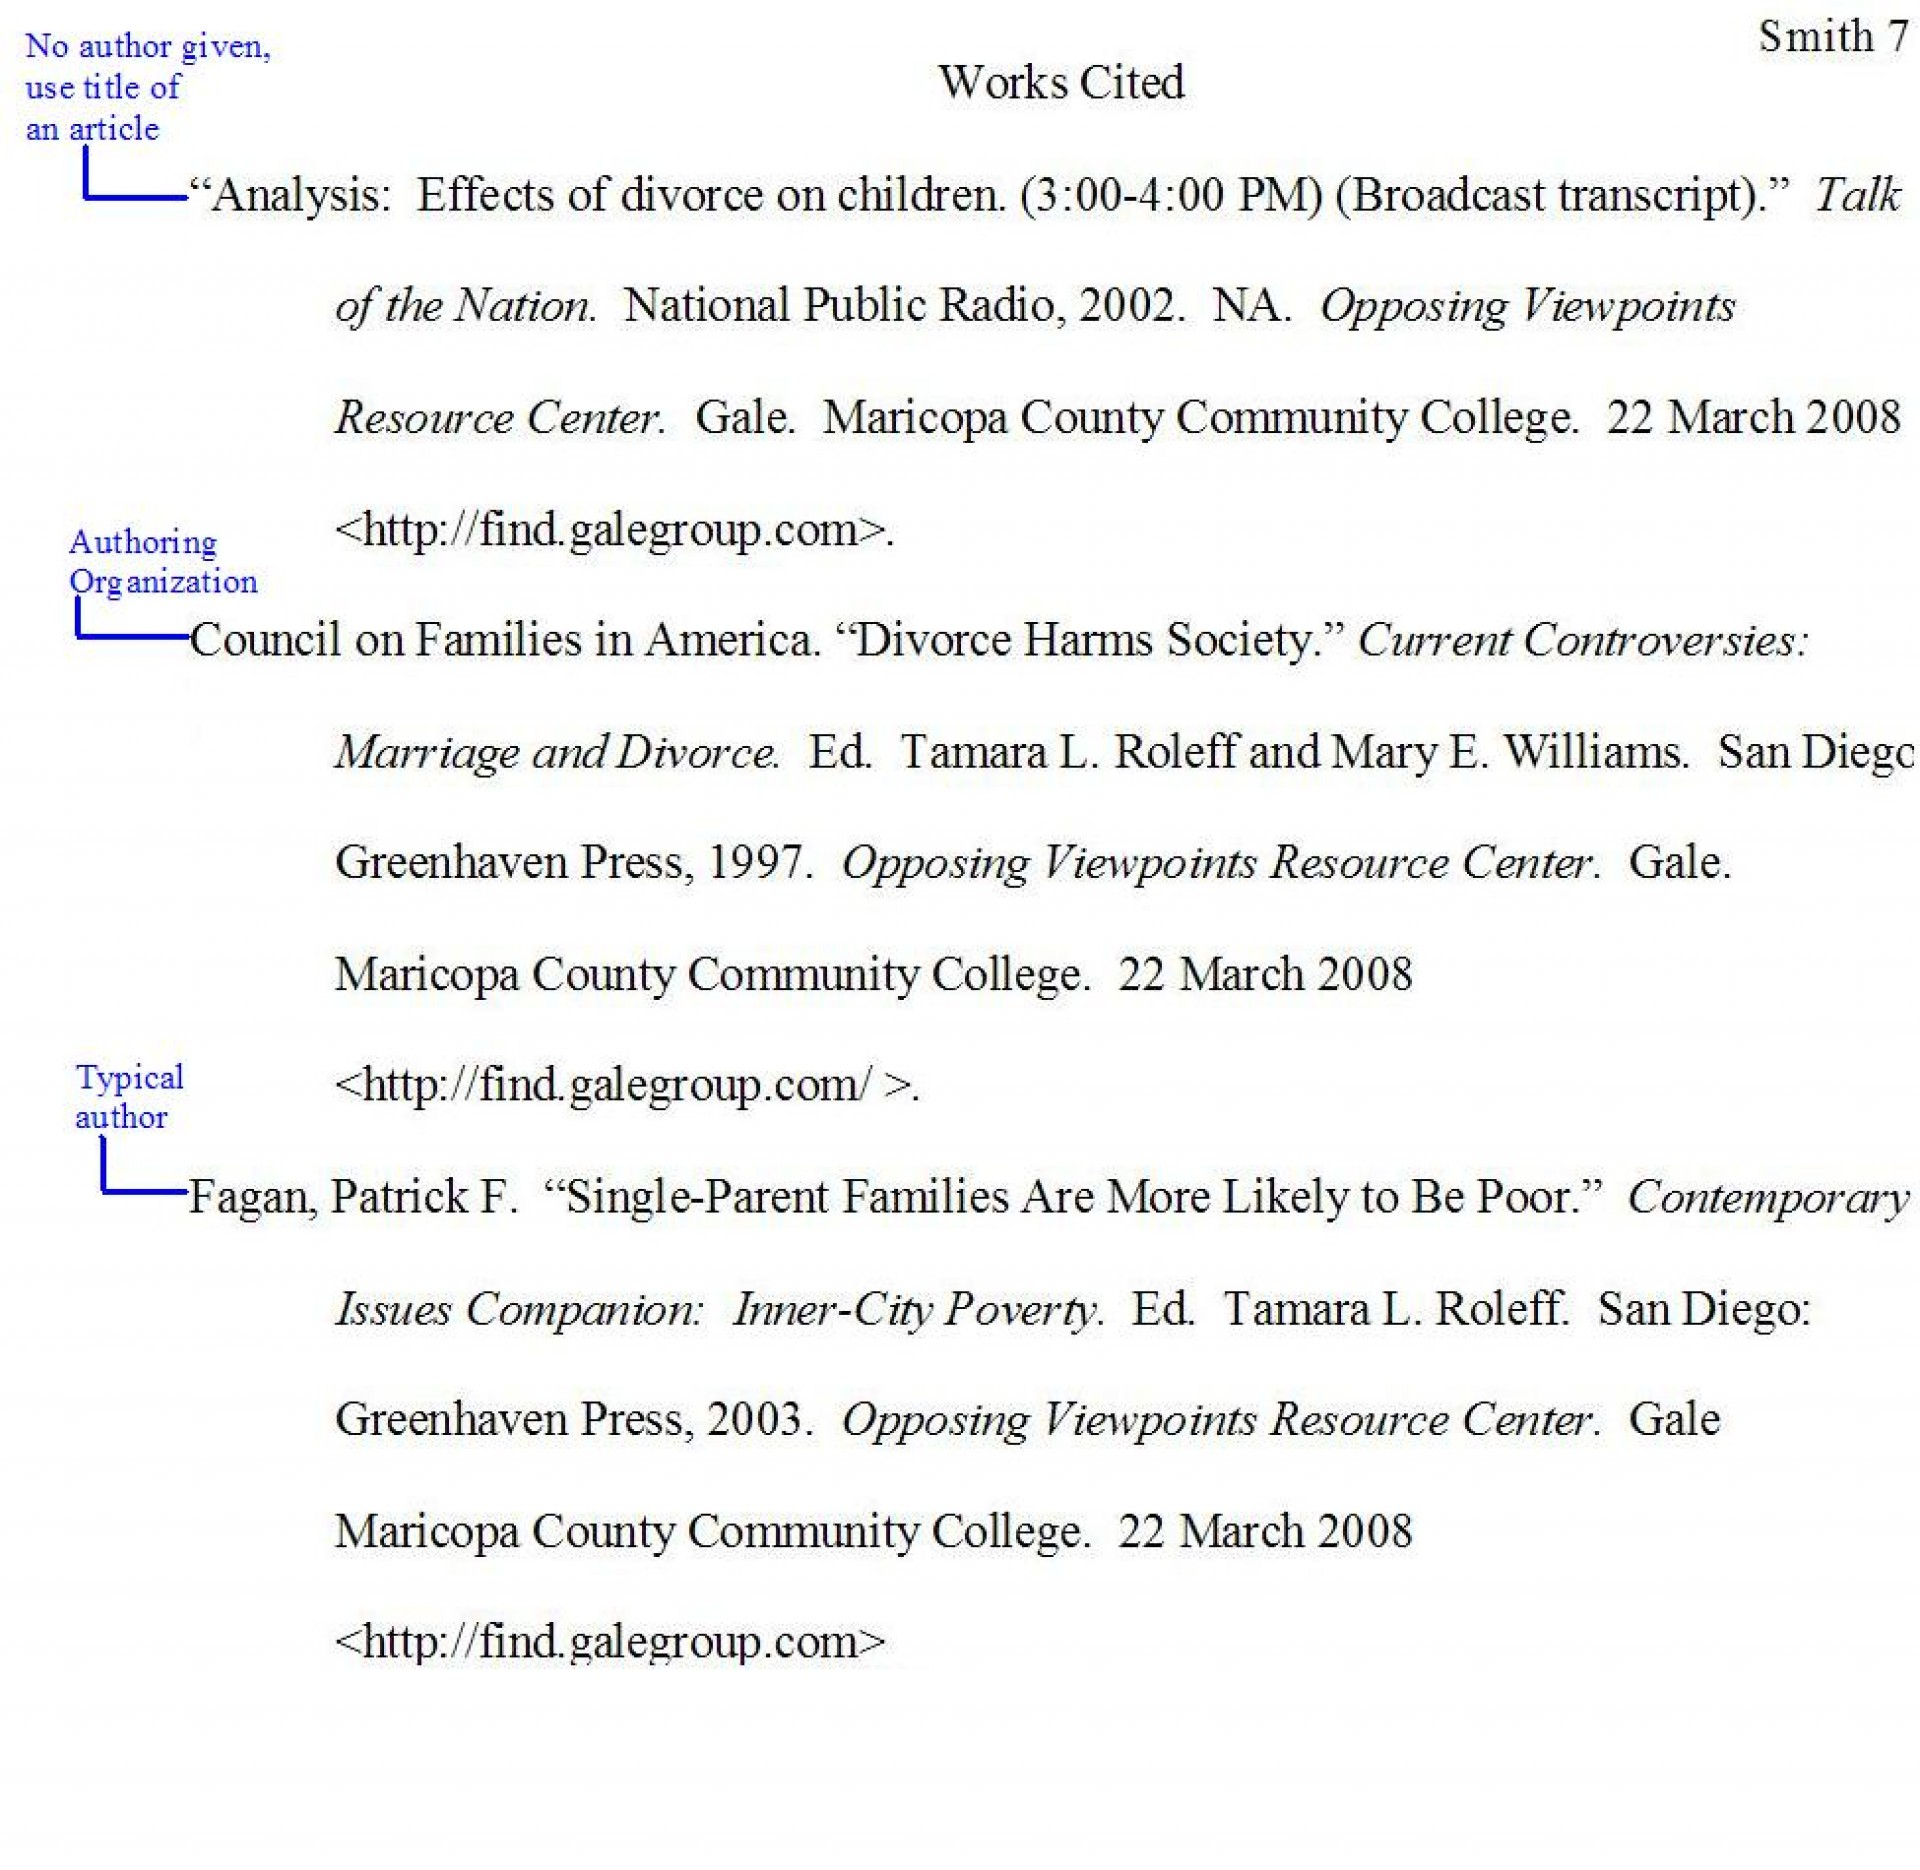 001 Samplewrkctd Jpg How To Cite Work In An Essay Stupendous Nber Working Paper Mla A Web Source 1920